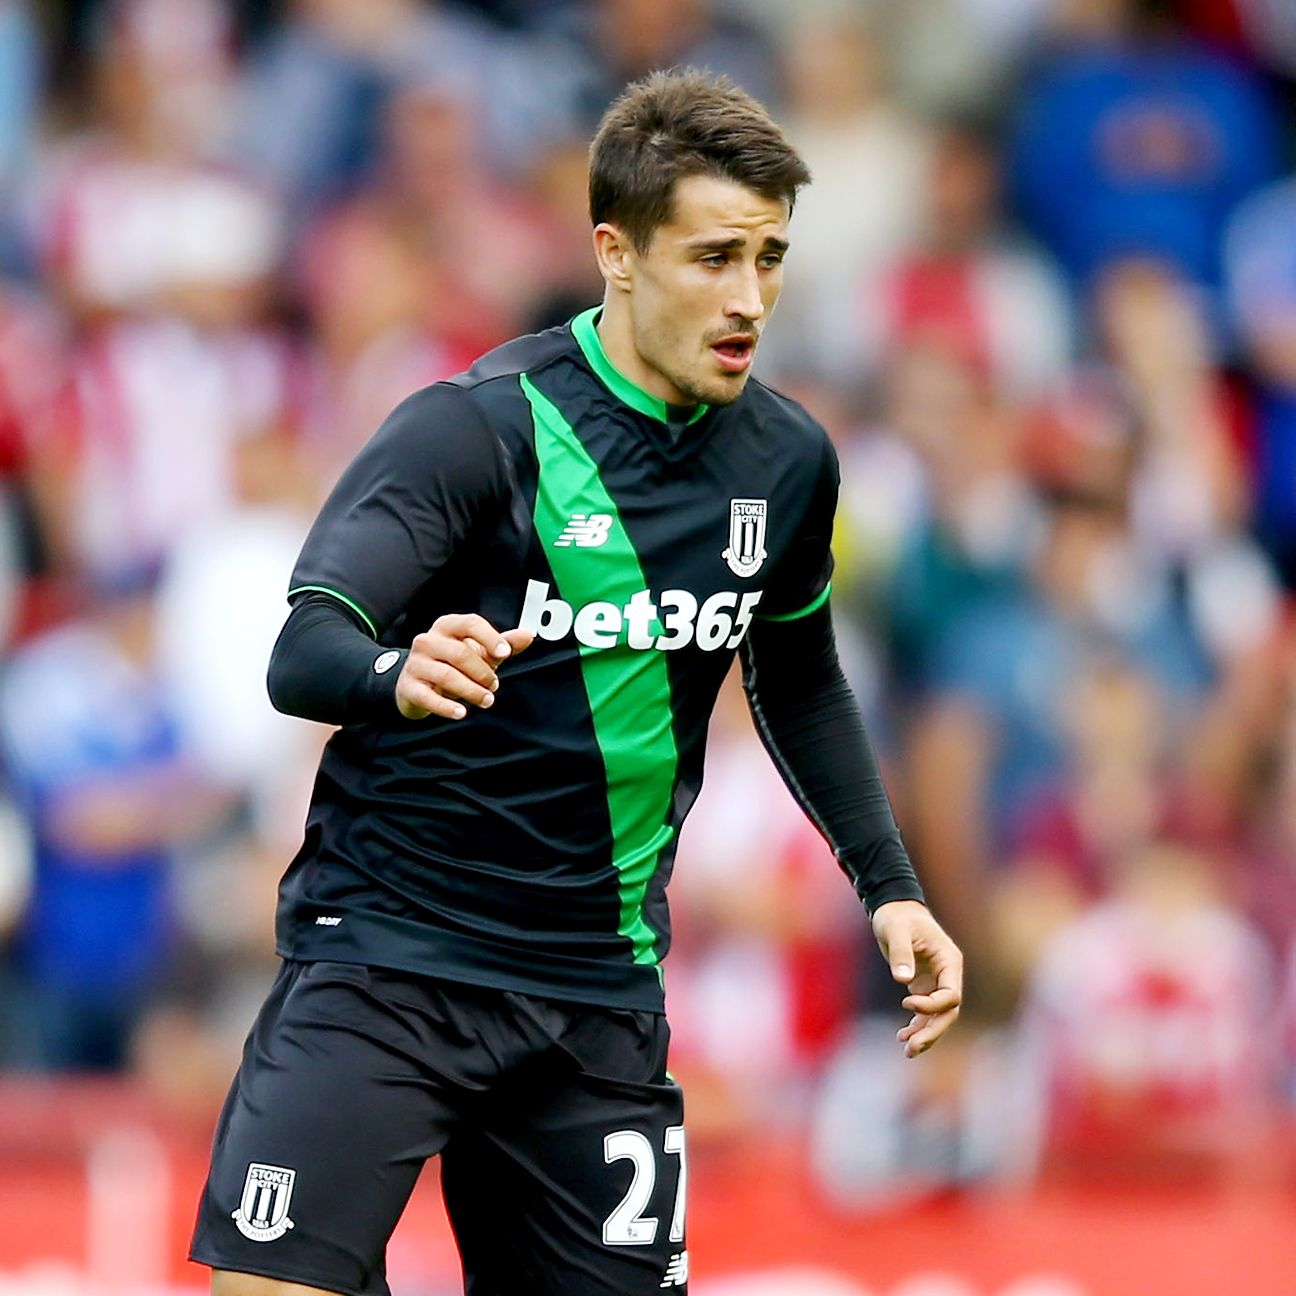 After a six-month injury layoff, Bojan Krkic is back in action for Stoke.